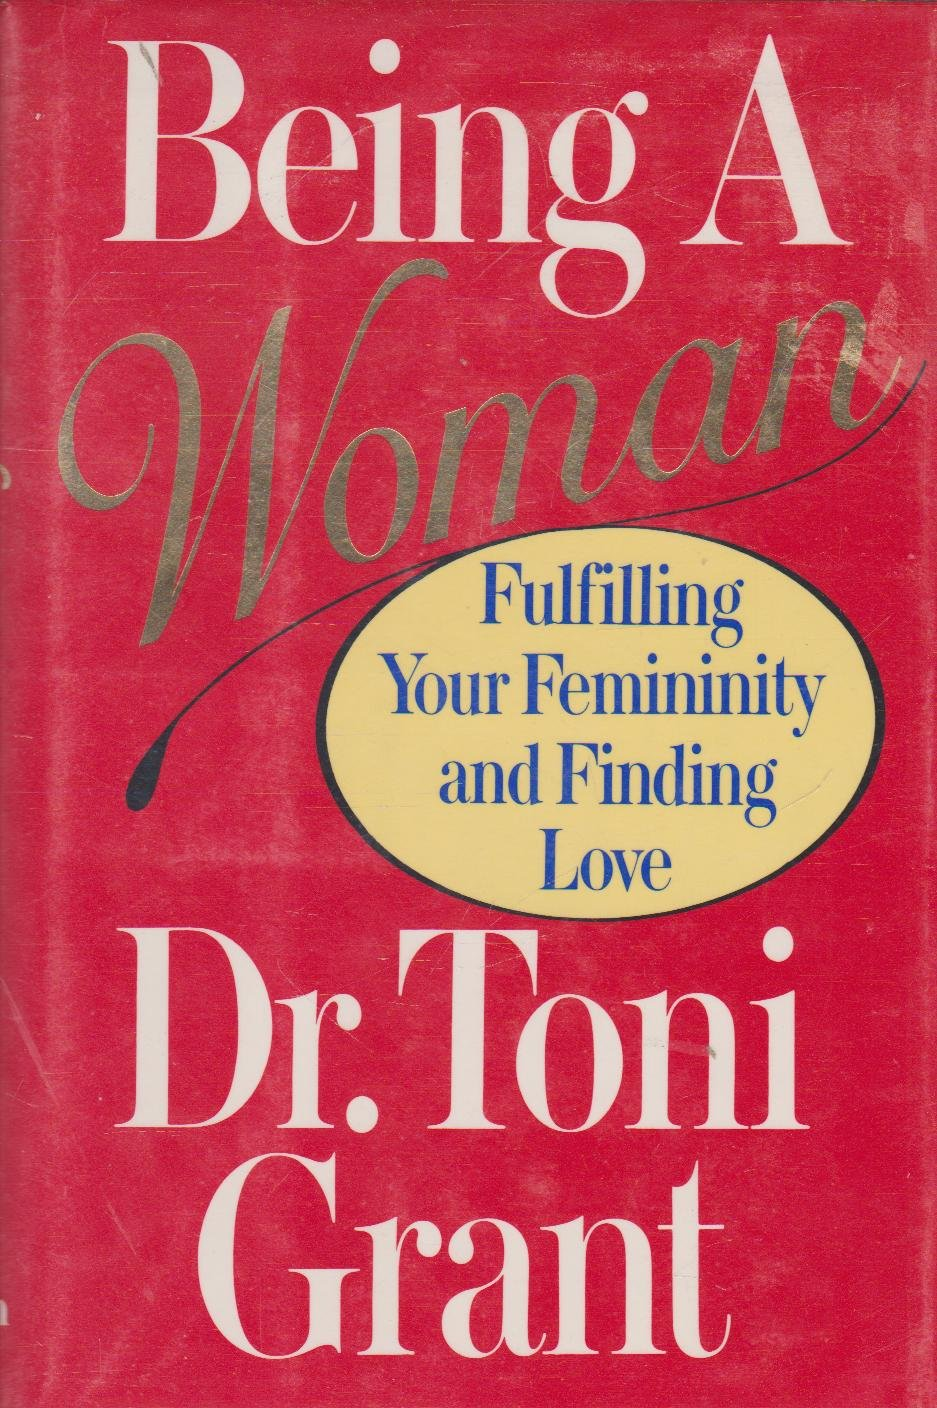 Being a woman fulfilling your femininity and finding love toni being a woman fulfilling your femininity and finding love toni grant 9780394554976 amazon books fandeluxe Gallery